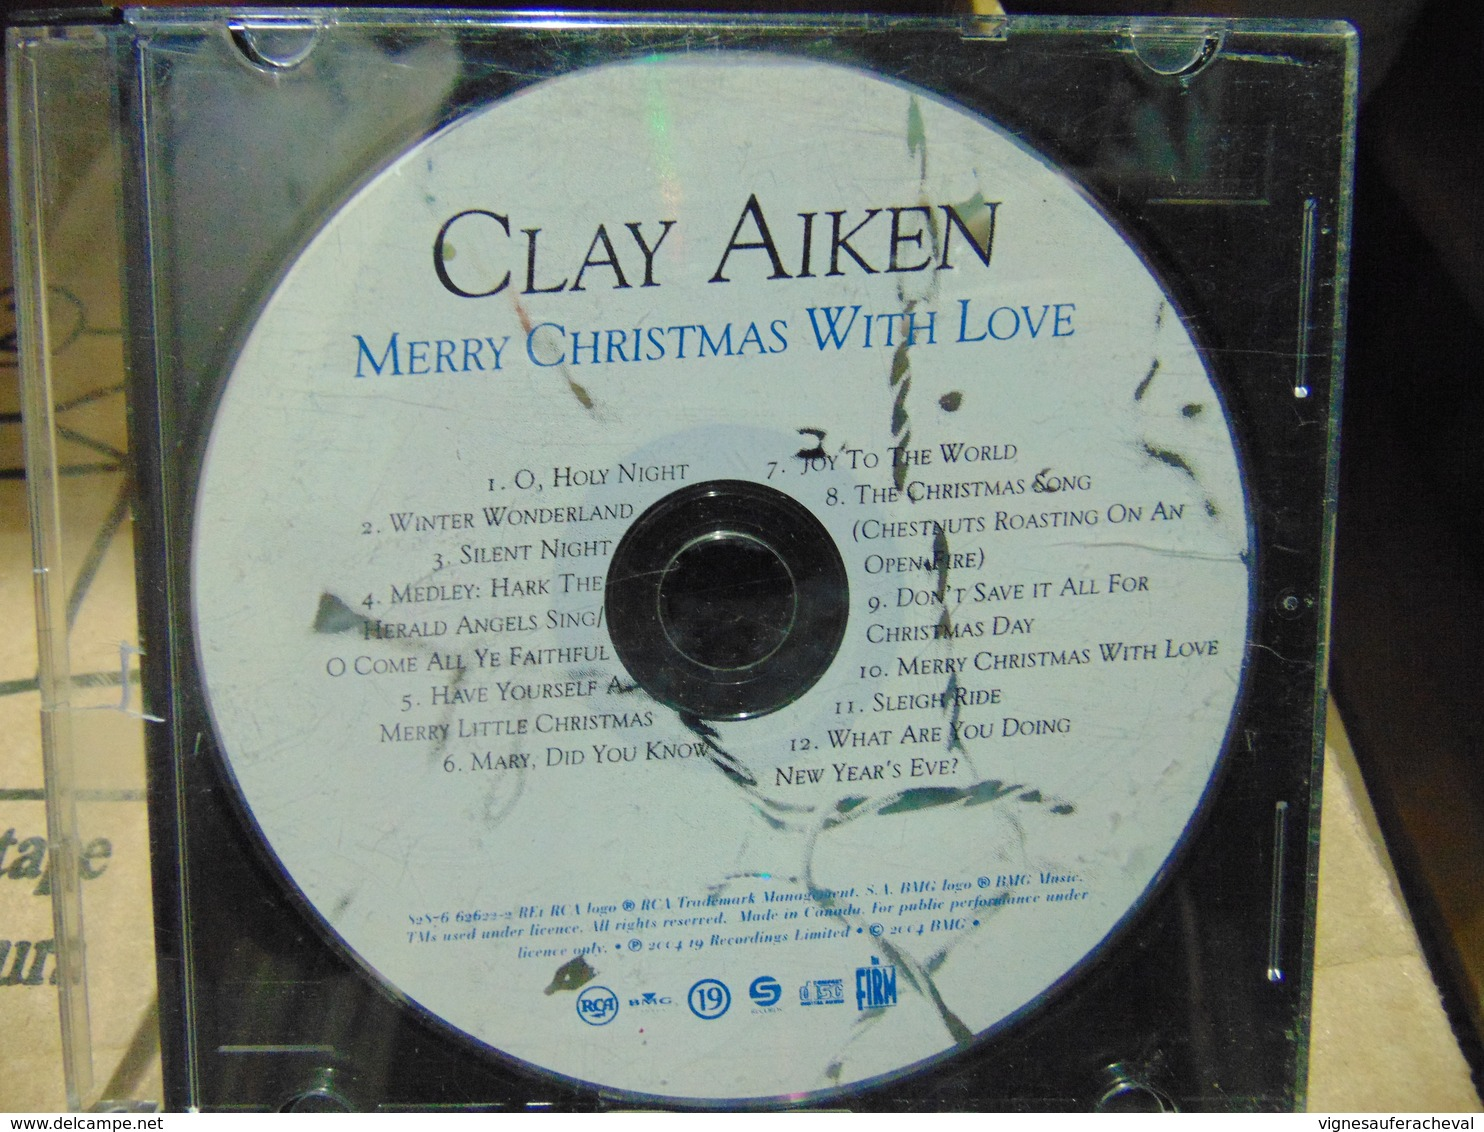 Clay Aiken- Merry Christmas With Love - Other - English Music